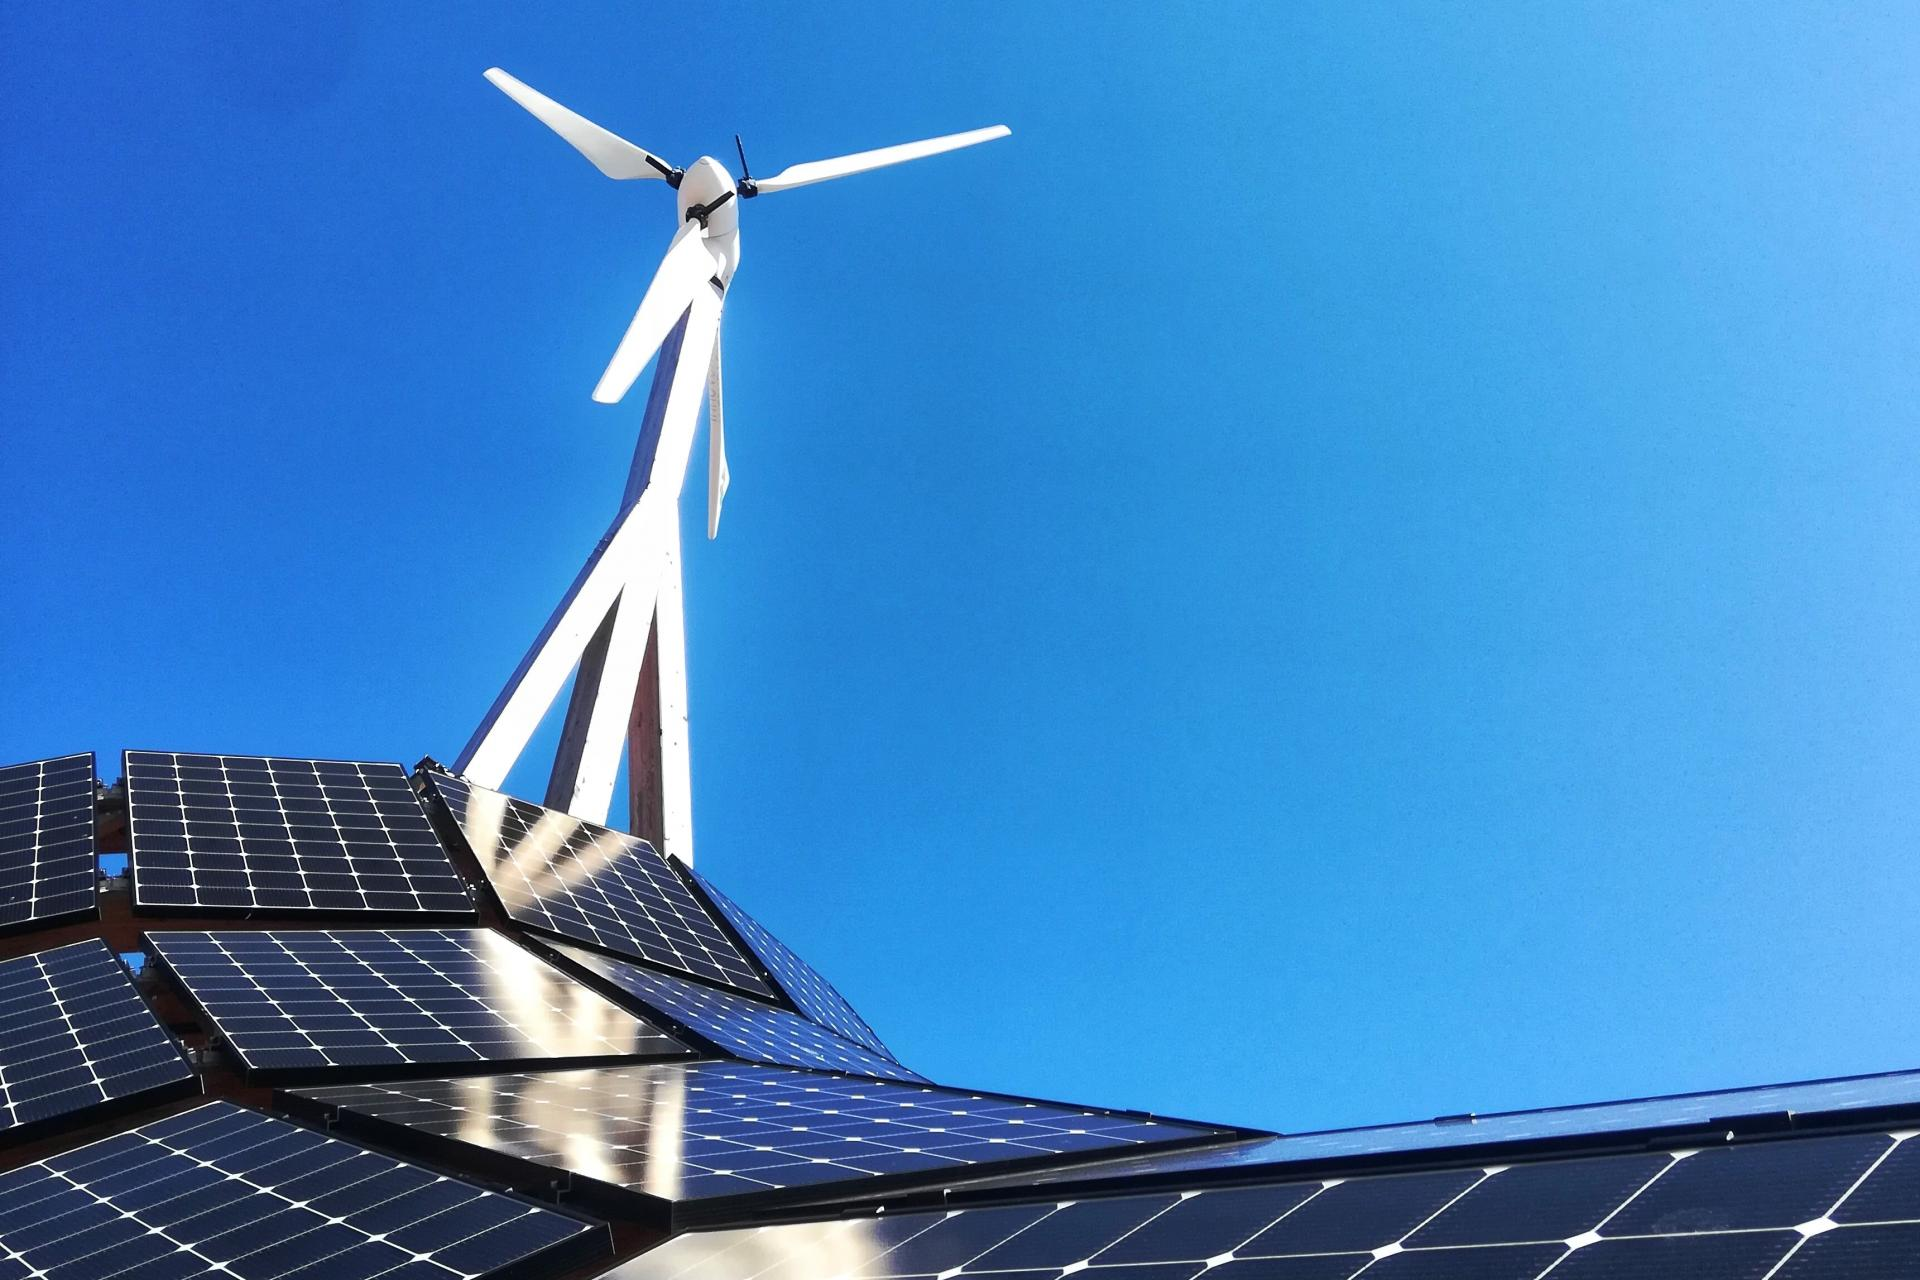 Powerful Pictures - celebrating diversity in community energy